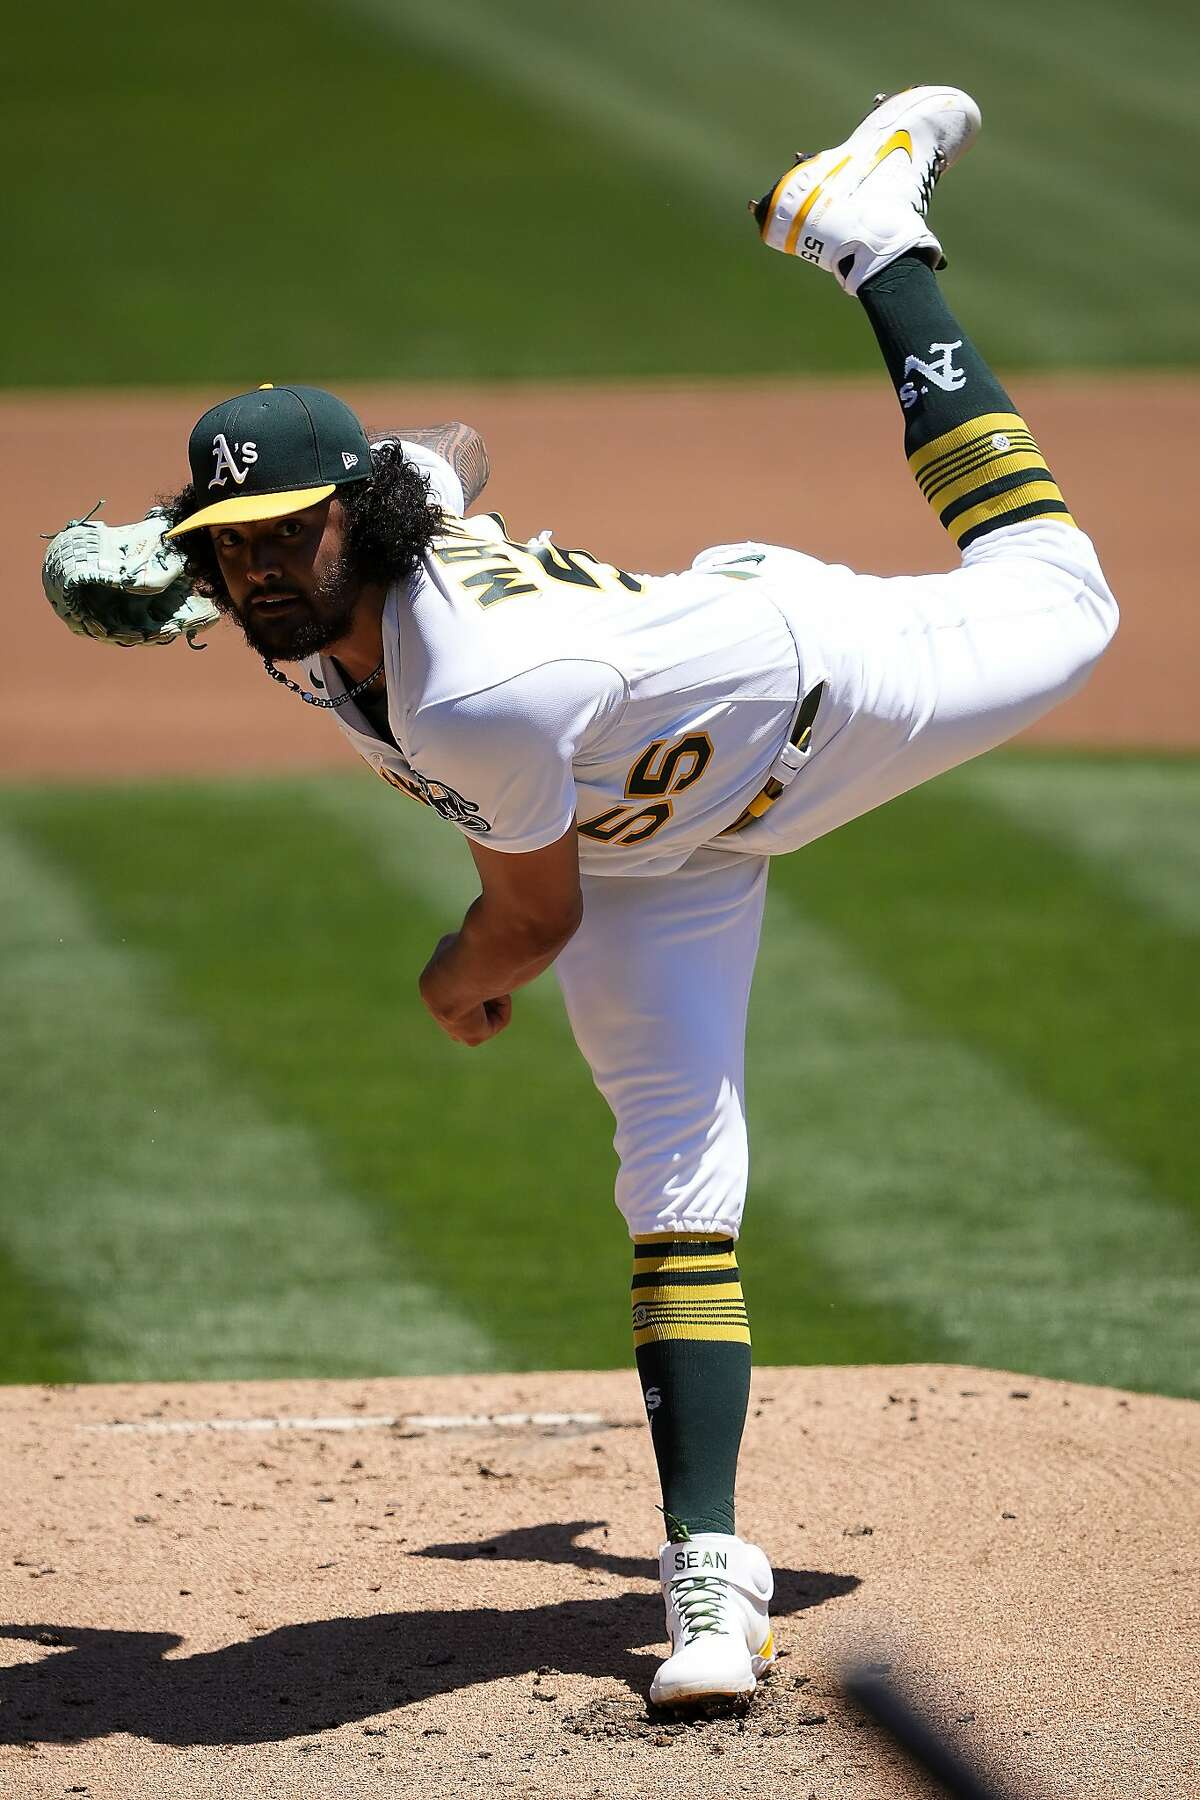 Oakland Athletics starting pitcher Sean Manaea throws against the Arizona Diamondbacks during the first inning of a baseball game Wednesday, June 9, 2021, in Oakland, Calif. (AP Photo/Tony Avelar)